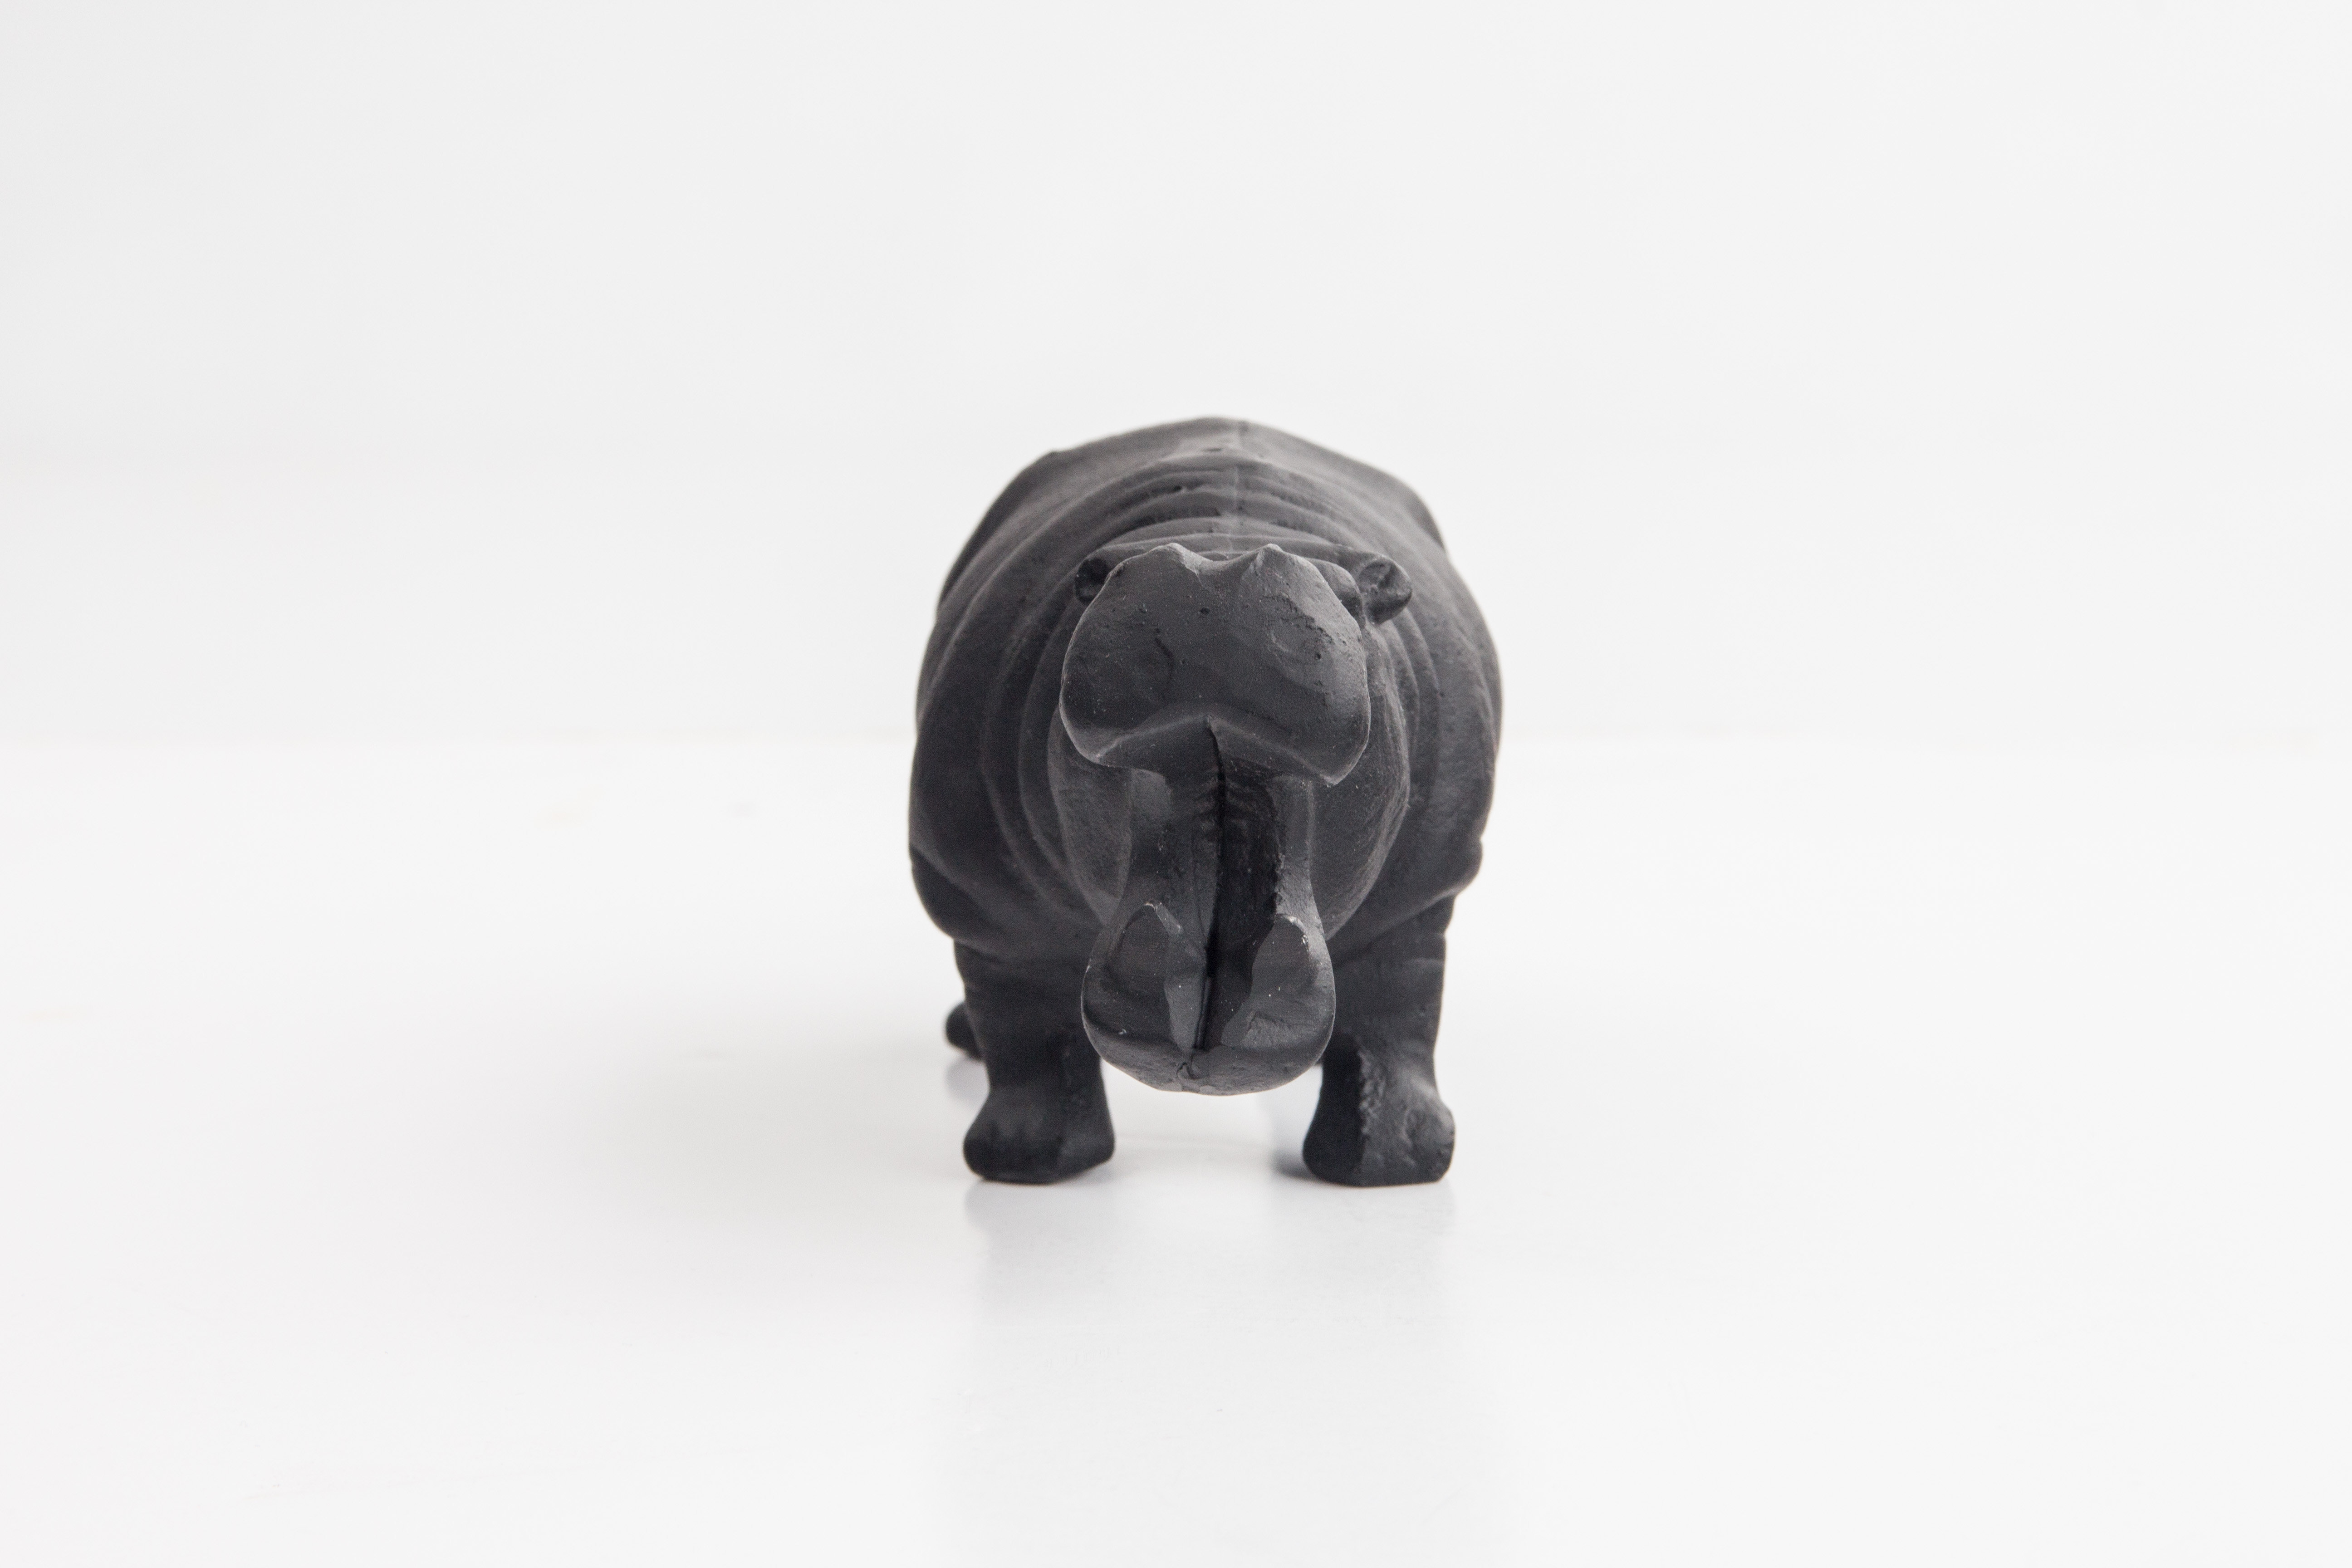 Hippo Bottle Opener Content Gallery : A bottle opener with serious bite.